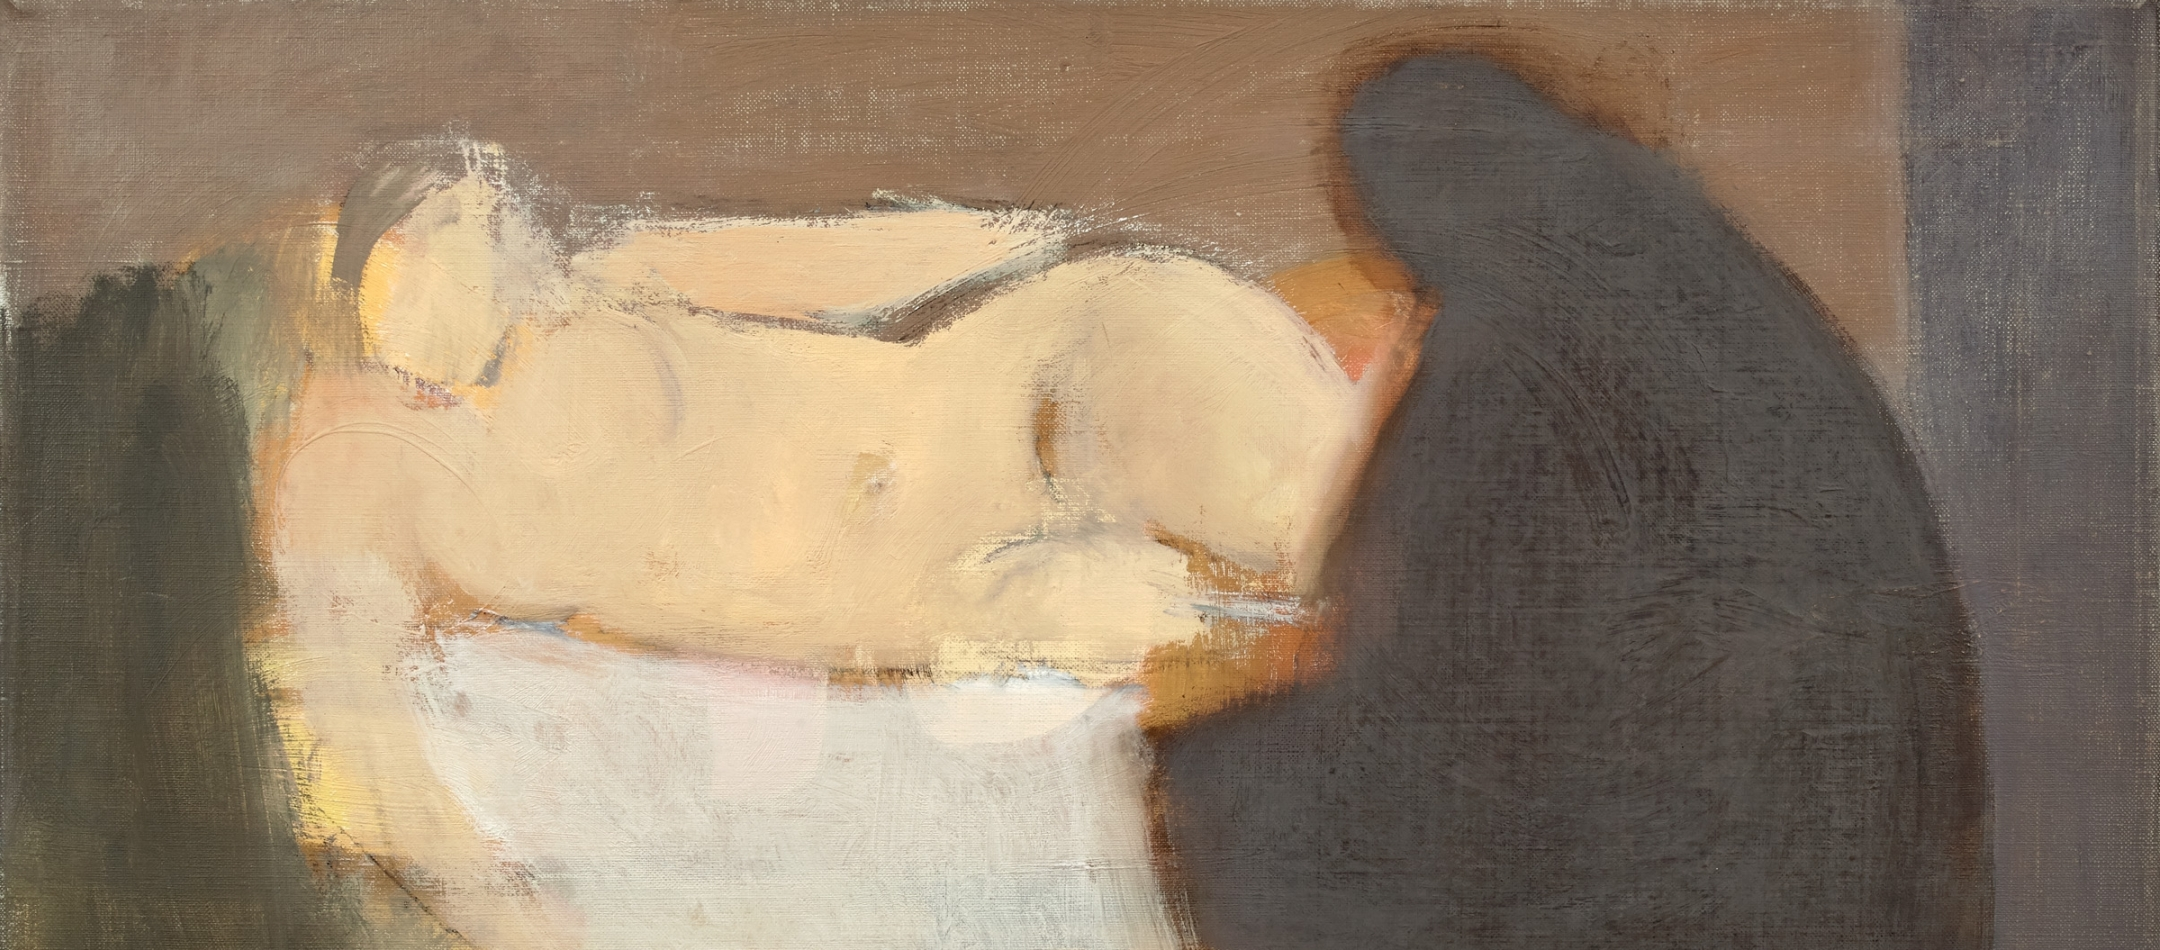 Susannah Phillips: Paintings of a Model, 1998 - 2006